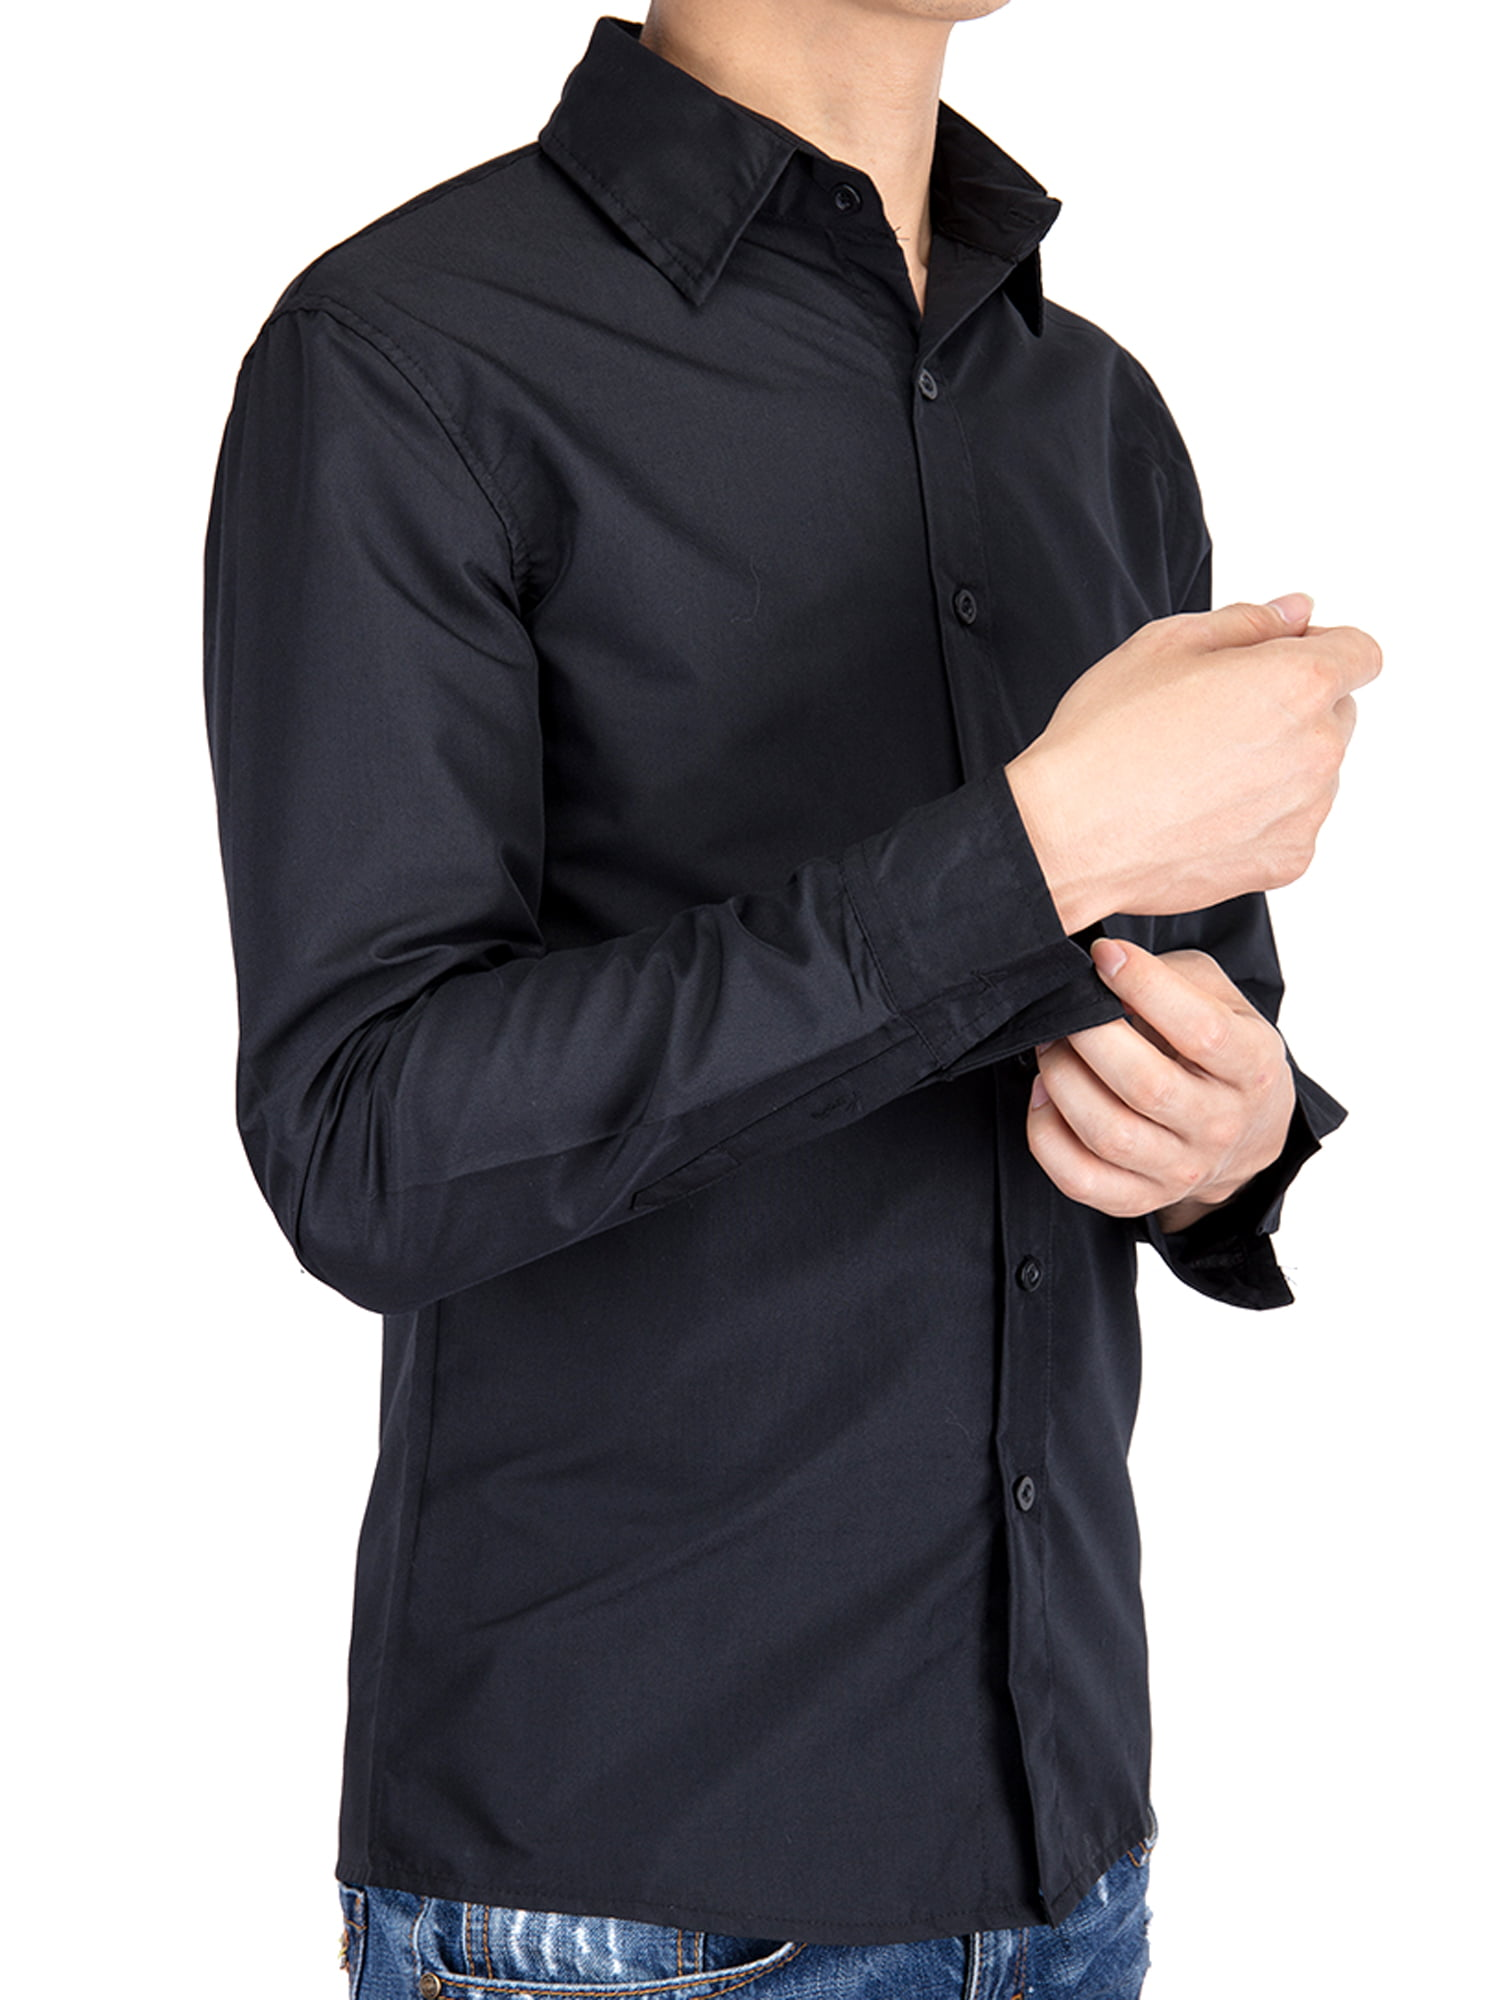 LELINTA Men's Solid White Dress Shirt and Mens Dress Shirts Long Sleeve Wrinkle Free , Black/ Blue Color, Up to Size 5XL